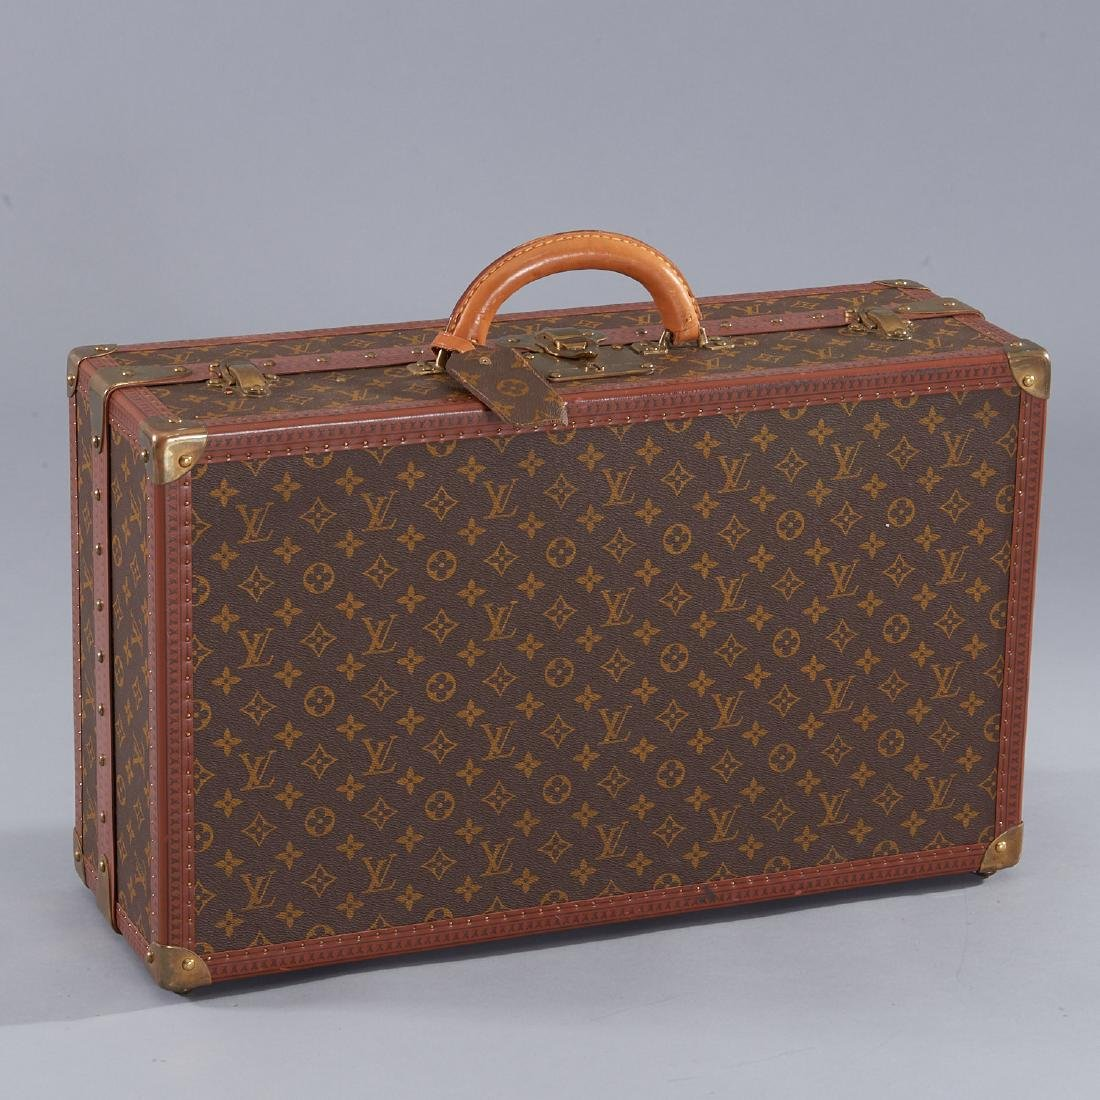 Louis Vuitton Monogram hard sided shoe trunk